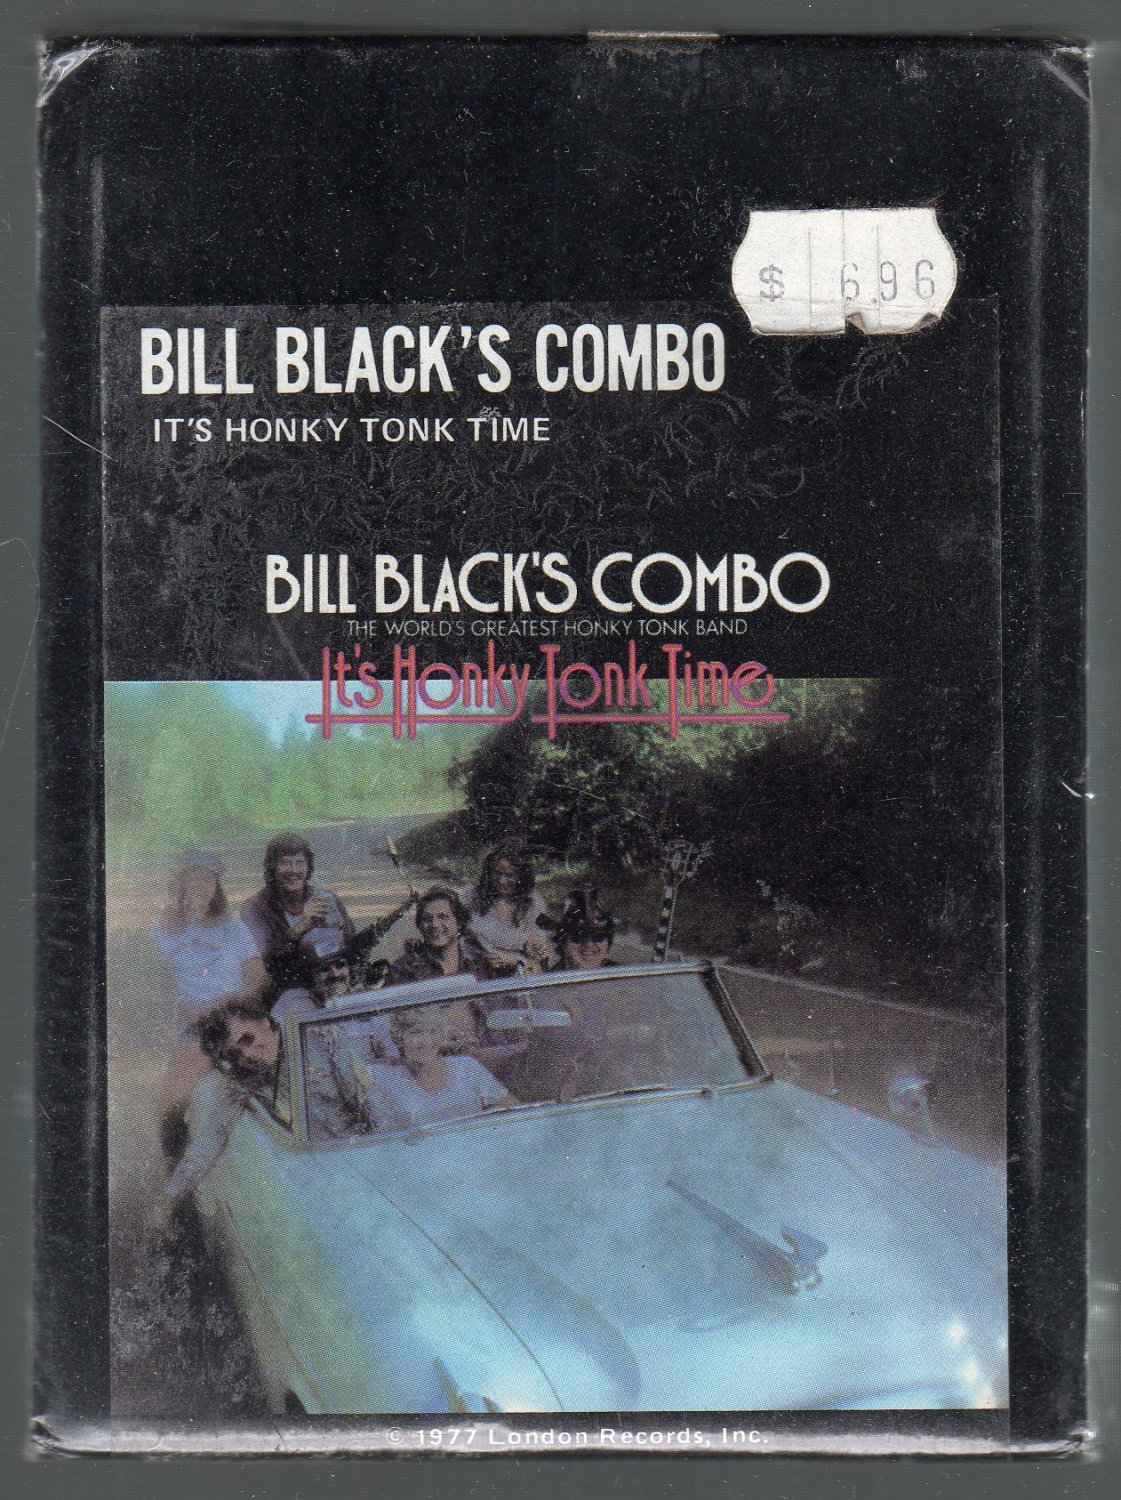 Bill Black's Combo - It's Honky Tonk Time Sealed 8-track tape